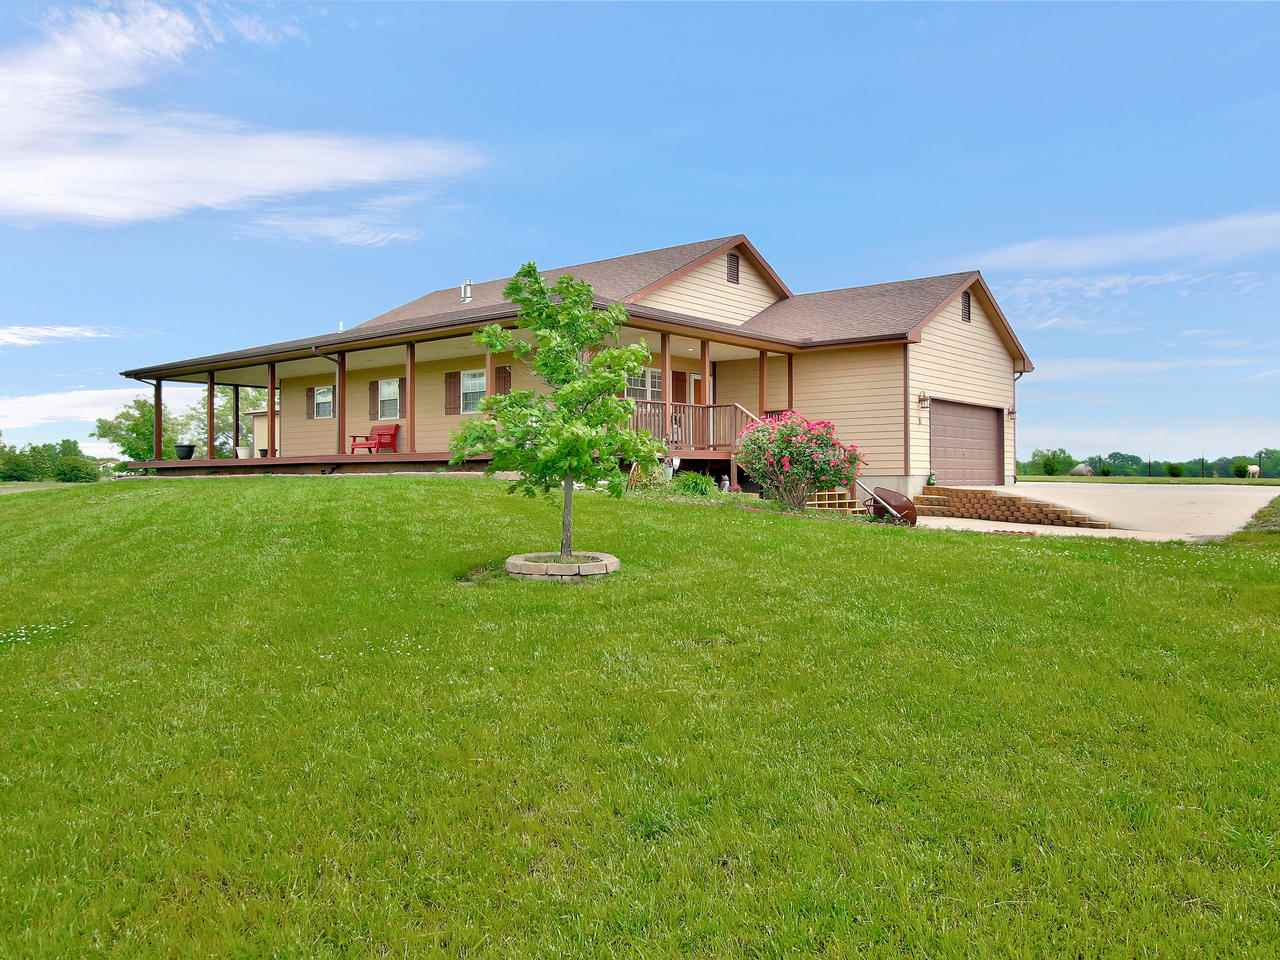 This beautiful home with detached outbuilding sits on almost 10 acres of freedom... also known as co